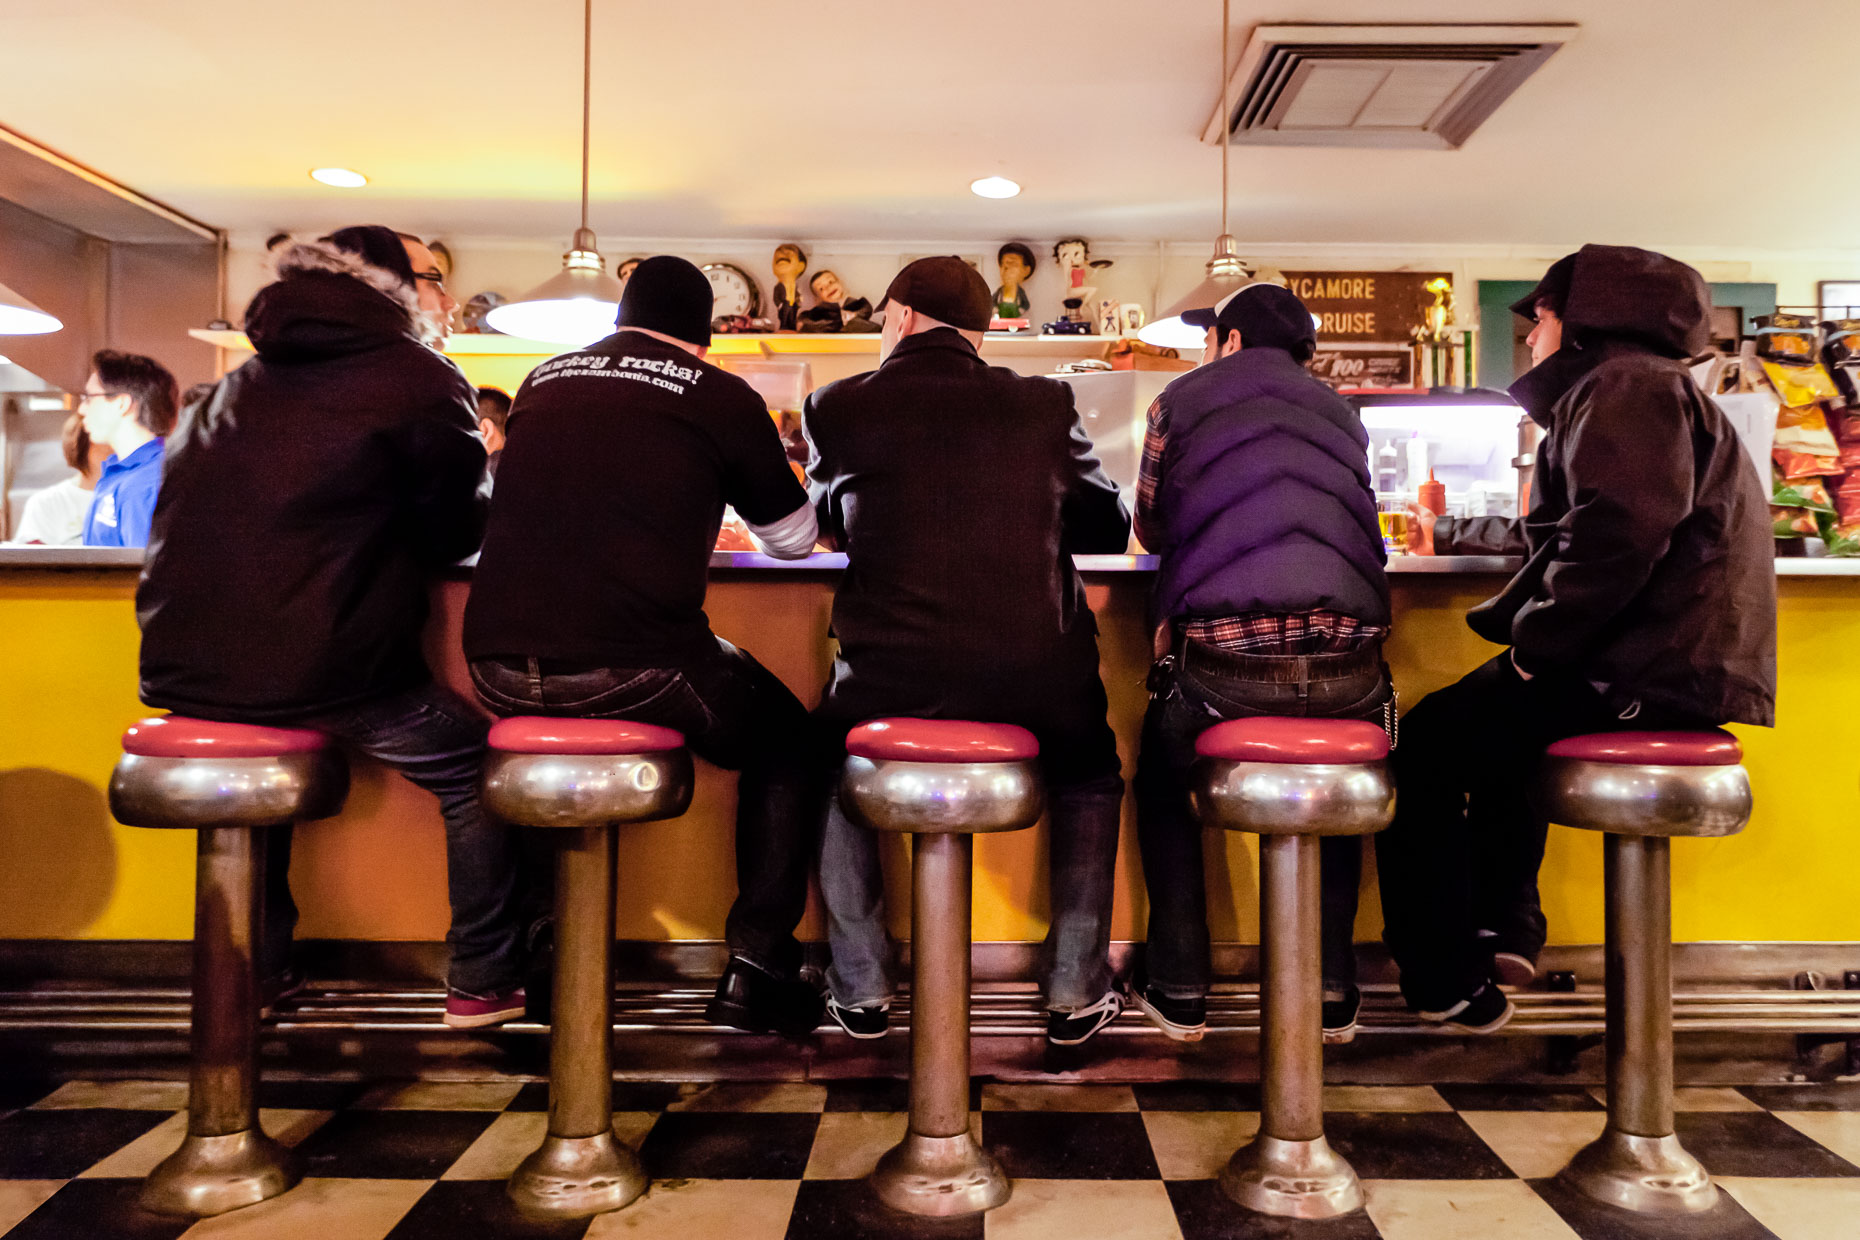 Group of men sitting on stools at counter in diner